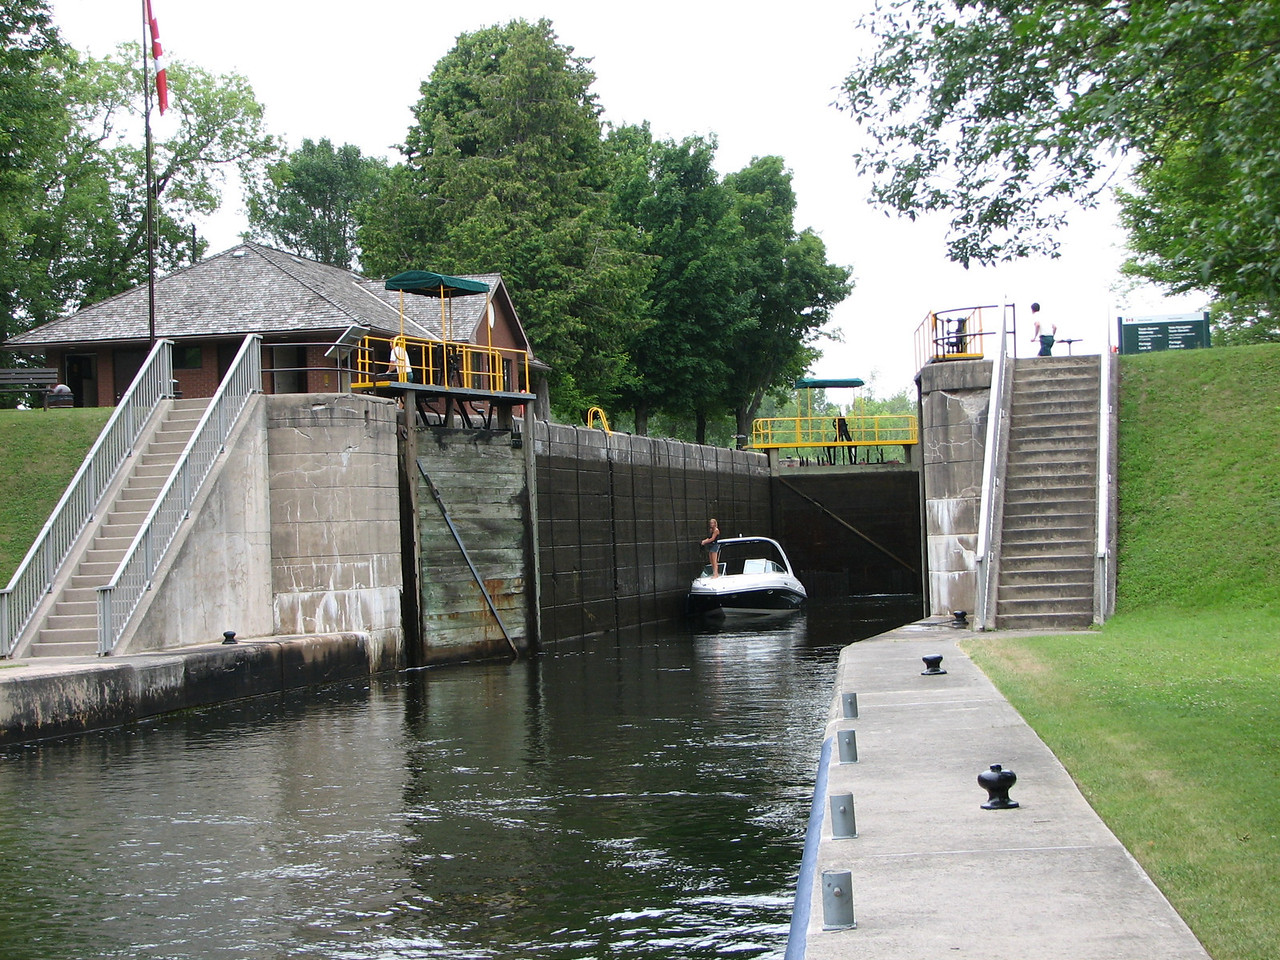 We approach lock 39, Portage, and wait our turn to go through.